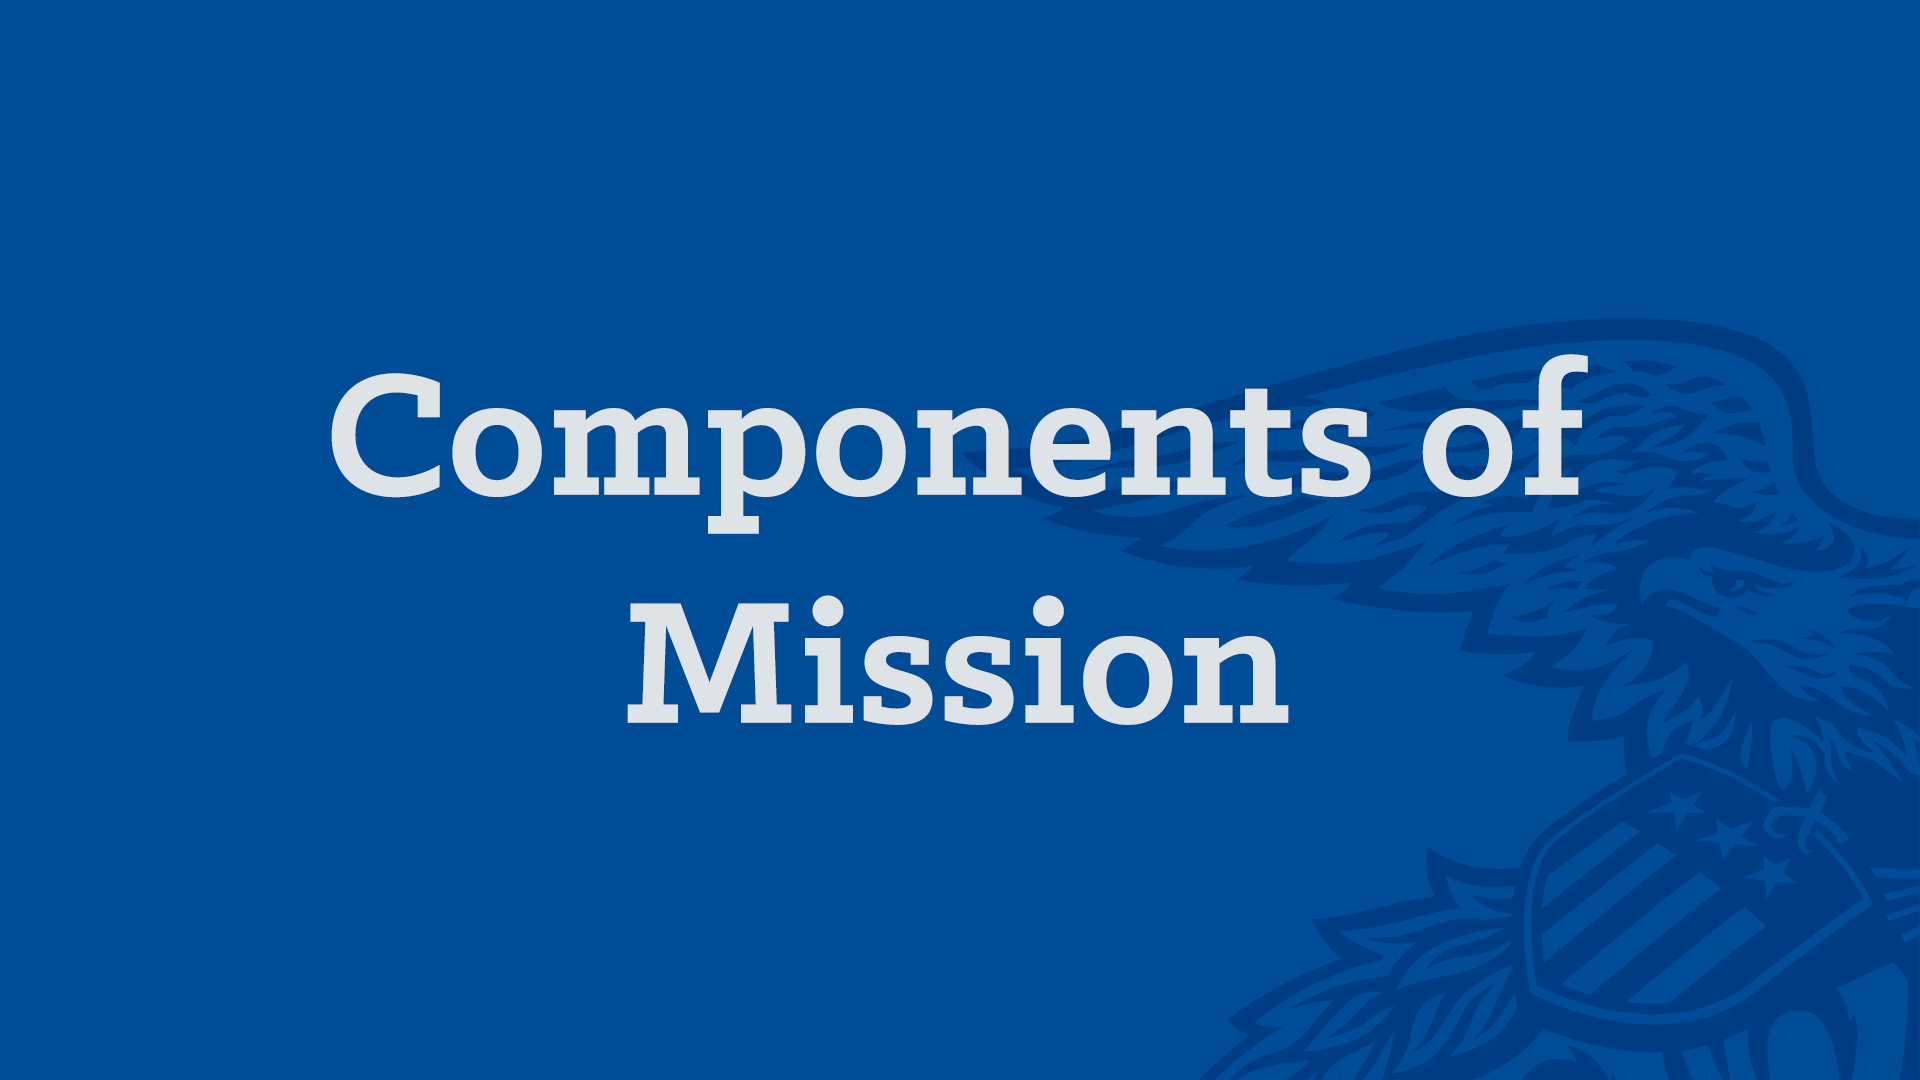 Components of Mission